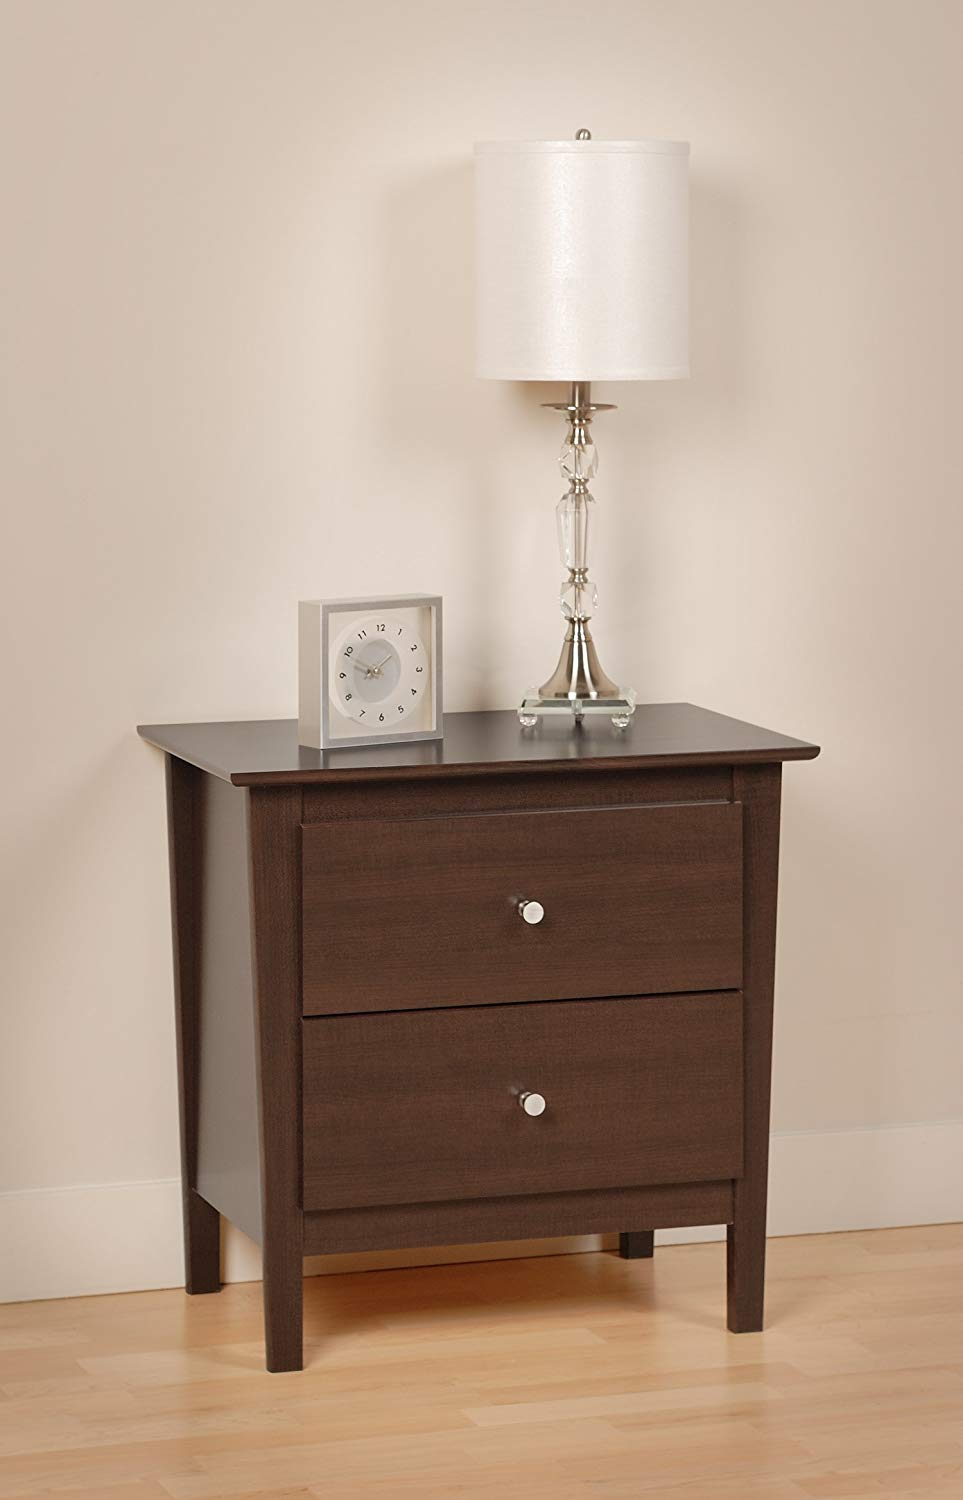 drawer black sauder finish soft wooden nightstand lorraine two looking wood storybook tall good sonoma charleston white target washed yaletown plans monterey prepac accent table